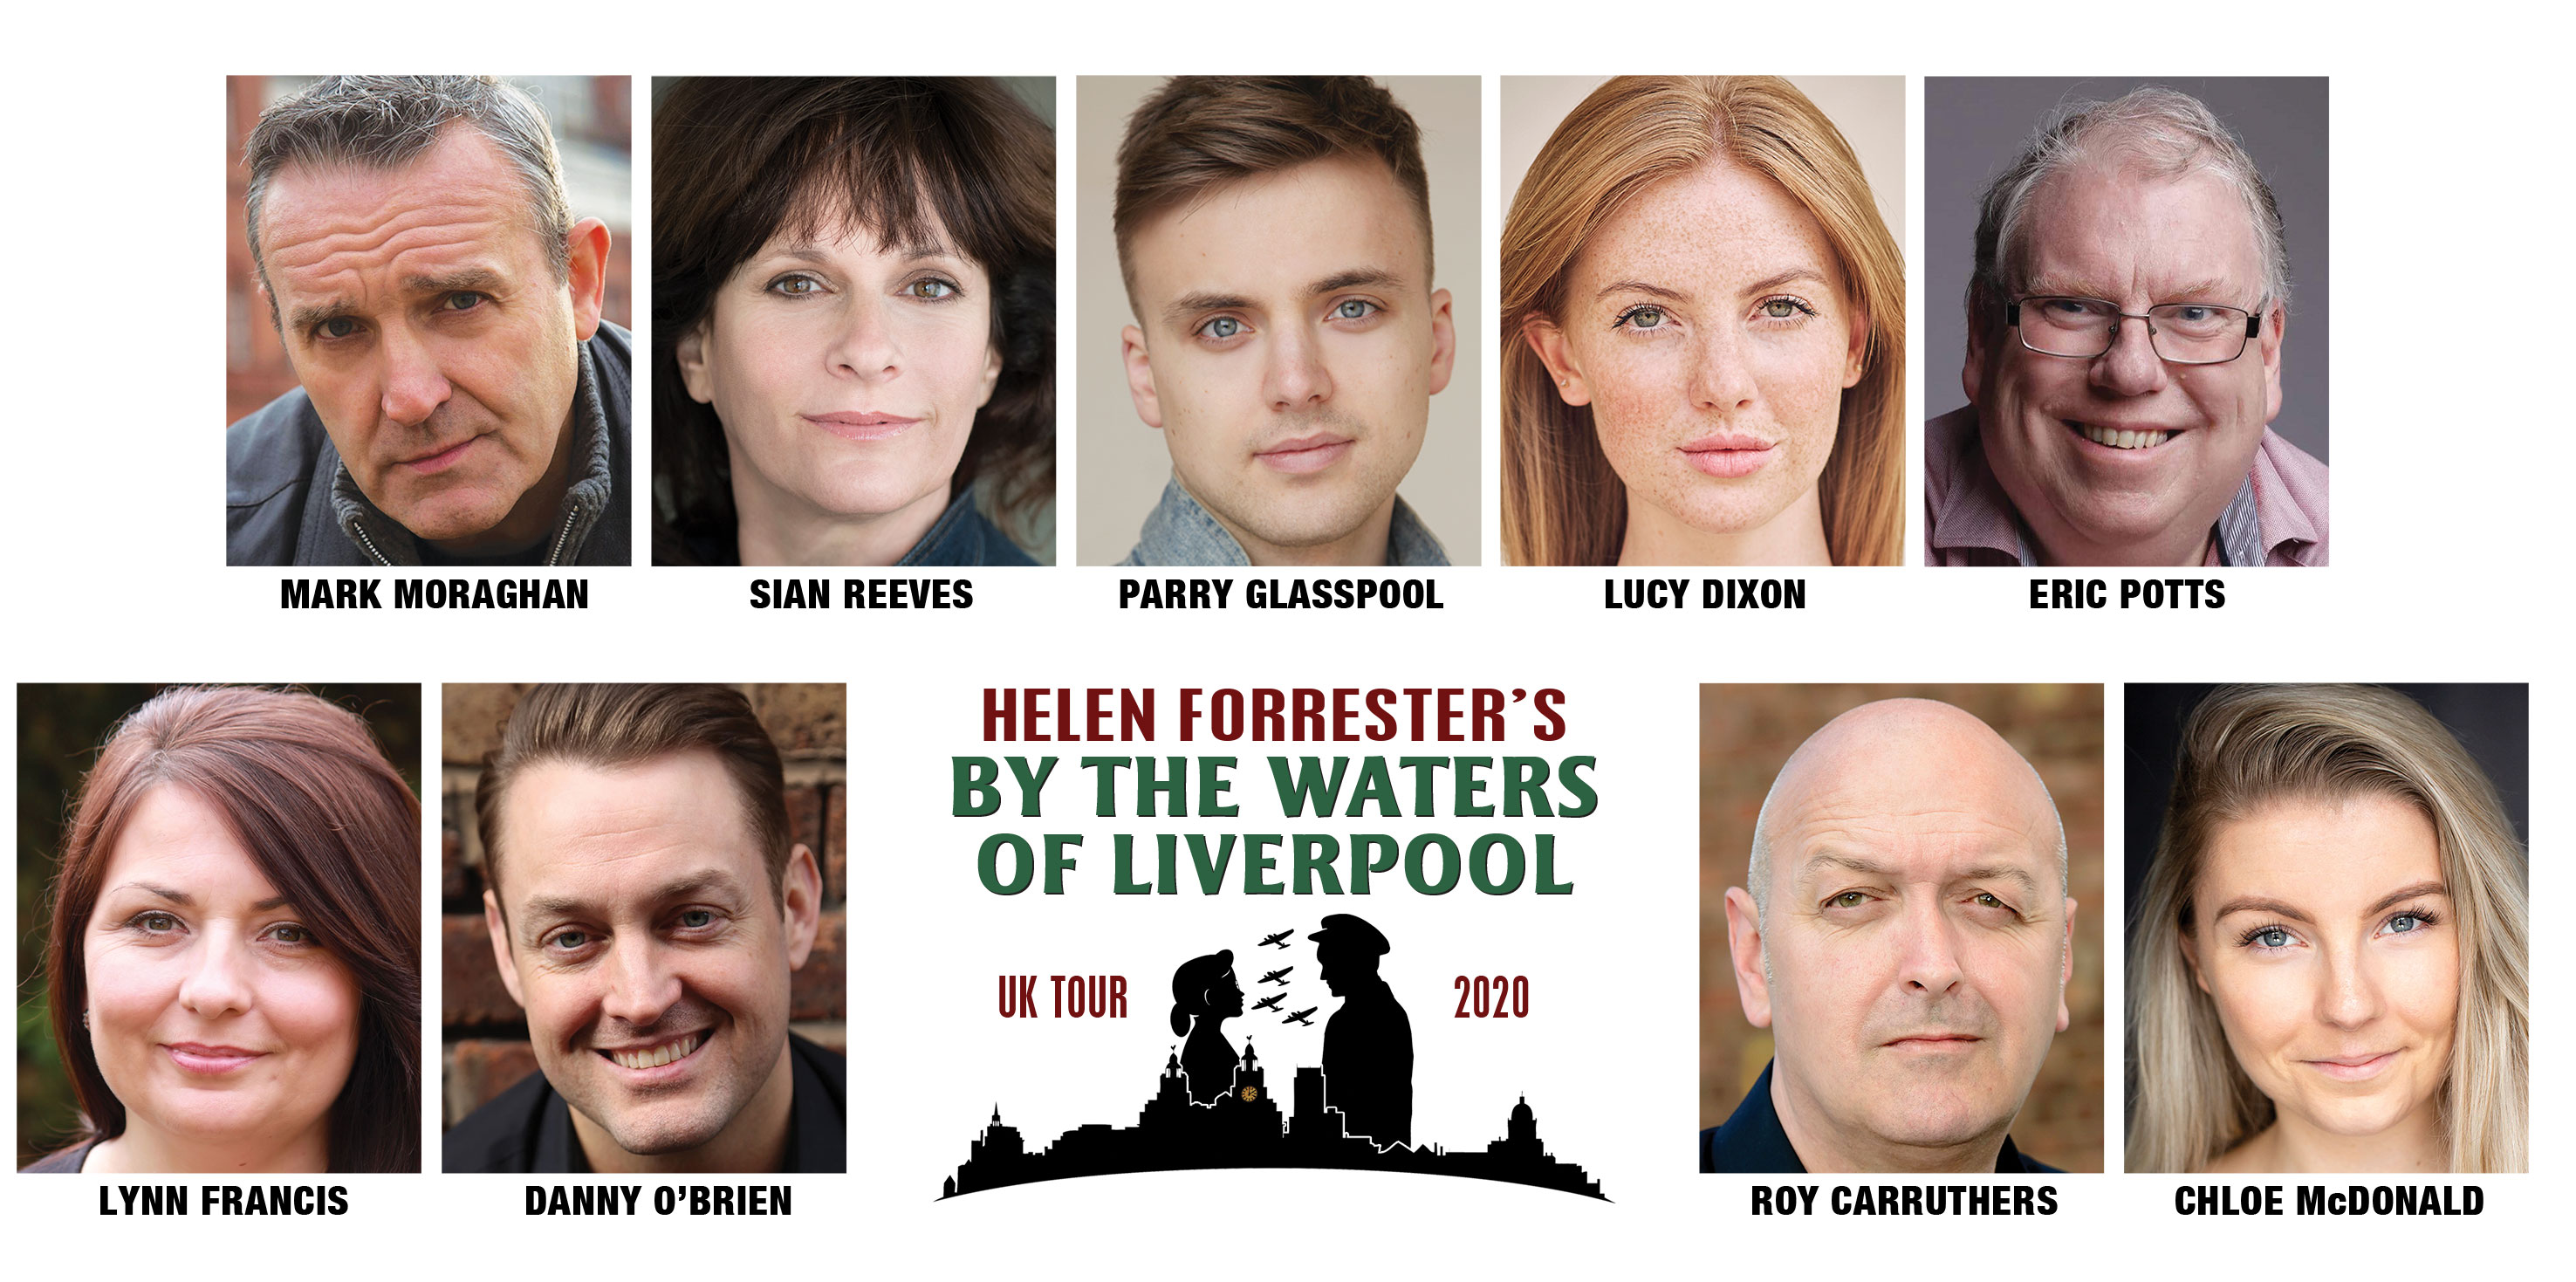 stockport's, Stockport's Lucy Dixon lands title role for tour of new Helen Forrester play 'By The Waters Of Liverpool', Skem News - The Top Source for Skelmersdale News